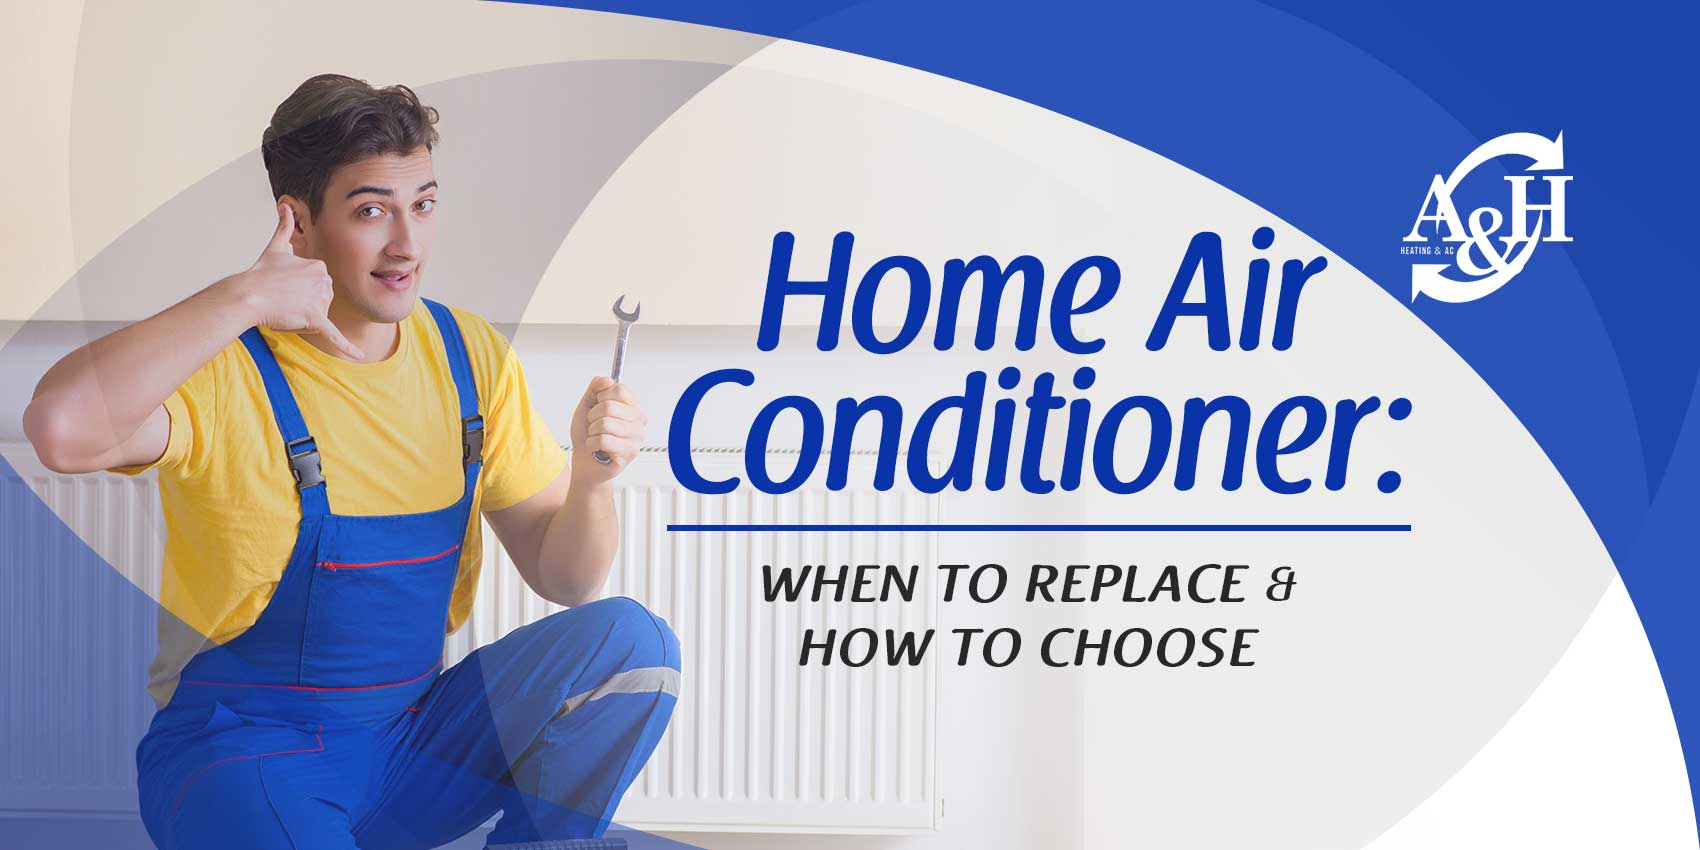 Home Air Conditioner: When to Replace & How to Choose